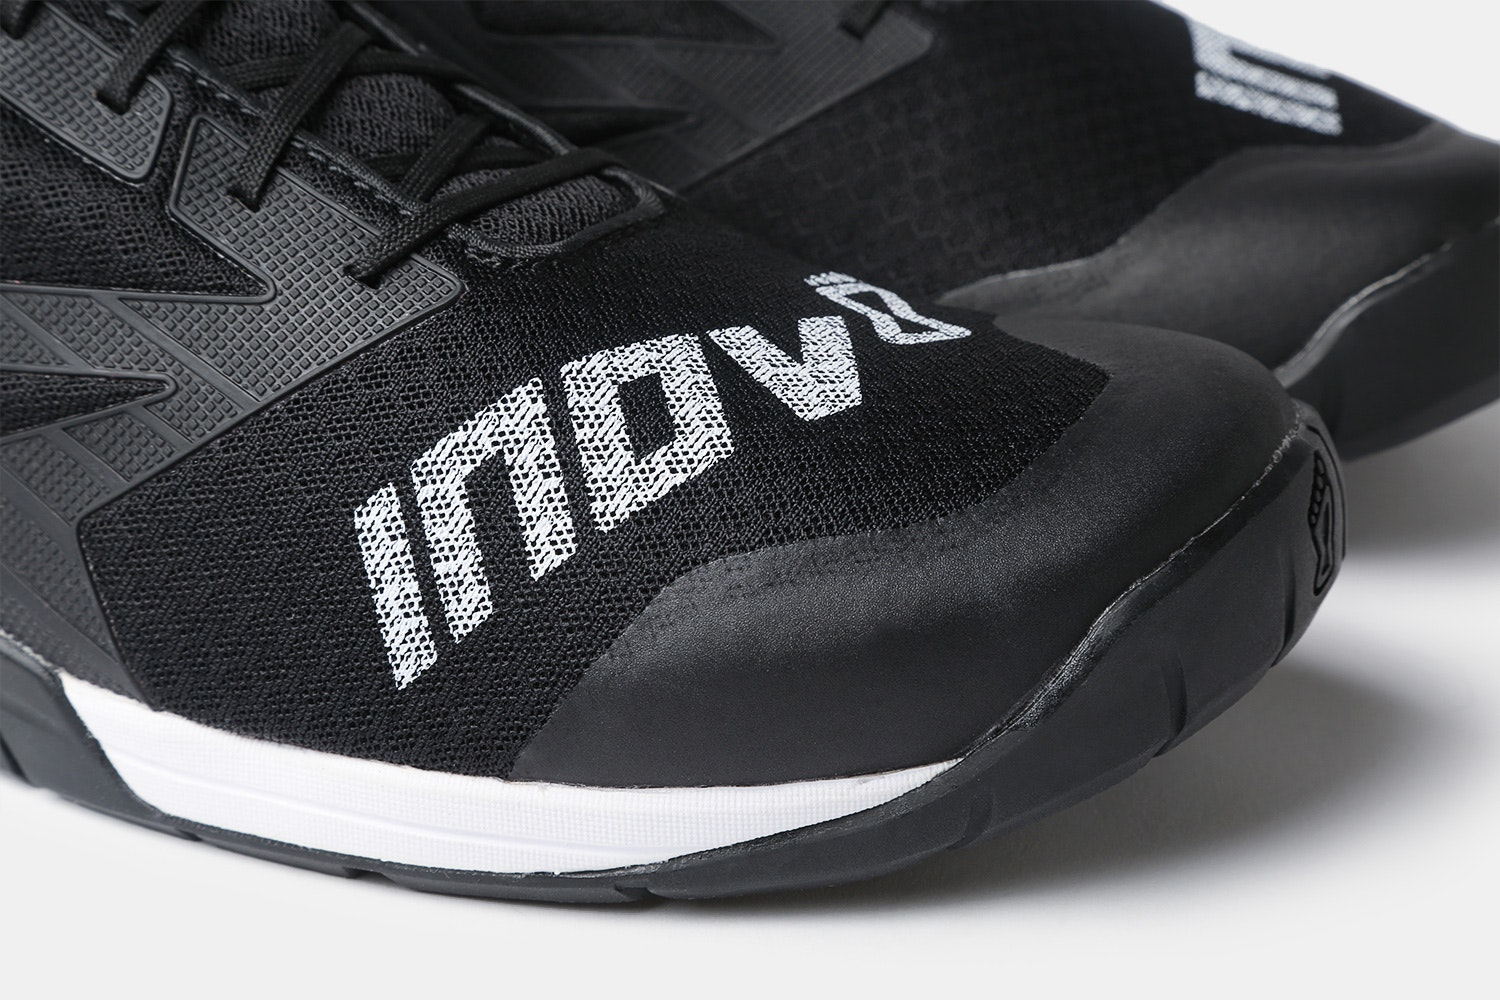 Inov-8 F-Lite 250 Training Shoes